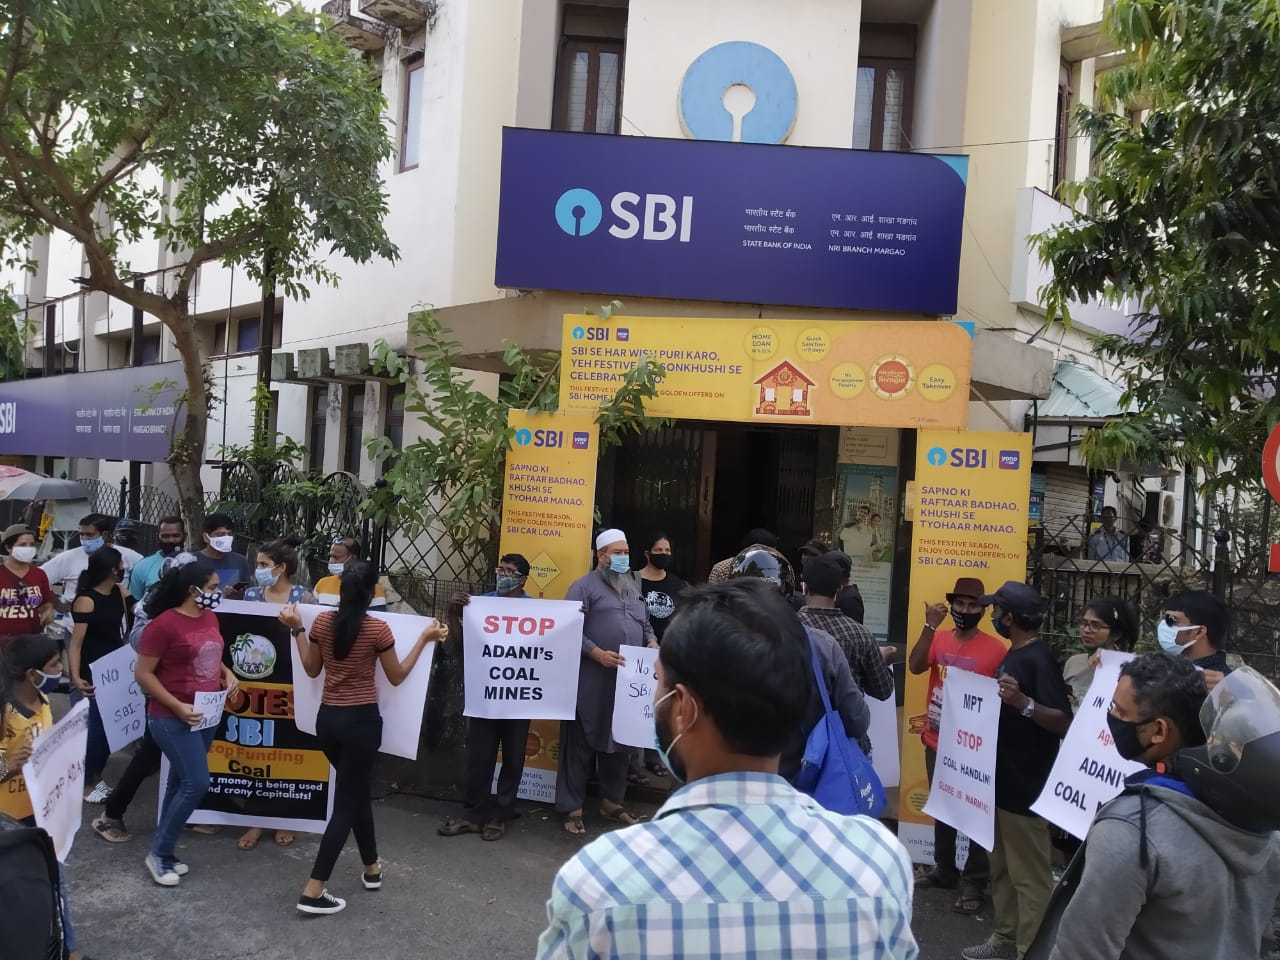 A protest in Goa targets the State Bank of India over a proposed loan for Adani's Australian coal mine